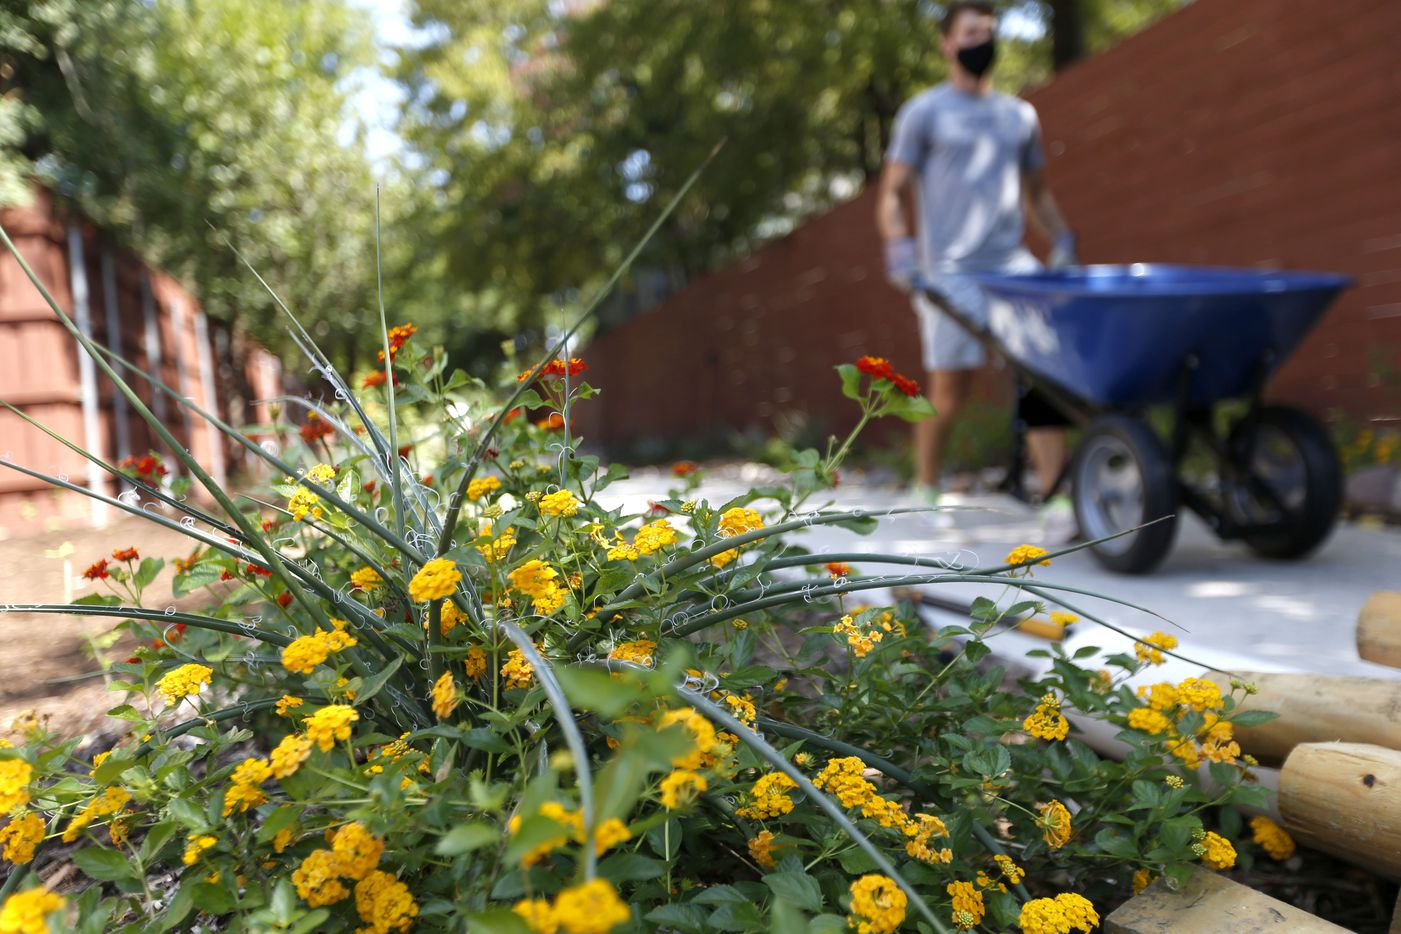 Newly installed plants bring a touch of color to the area as neighbors and friends of the Cochran Heights Neighborhood Association work together to landscape the formerly neglected alley.